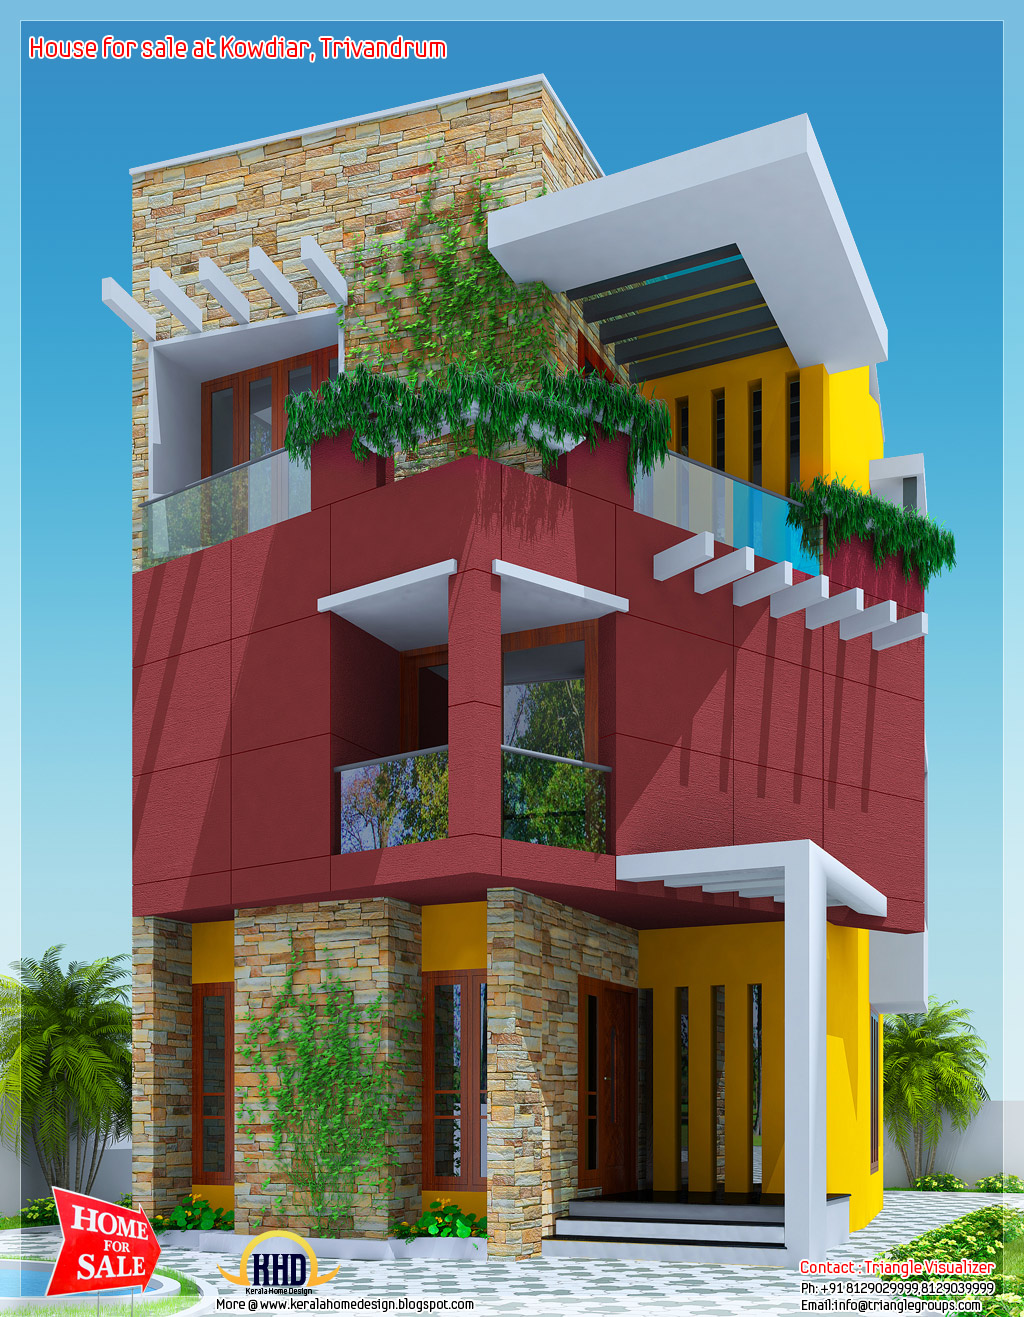 3 floor house for sale at kowdiar trivandrum kerala for Home designs for sale